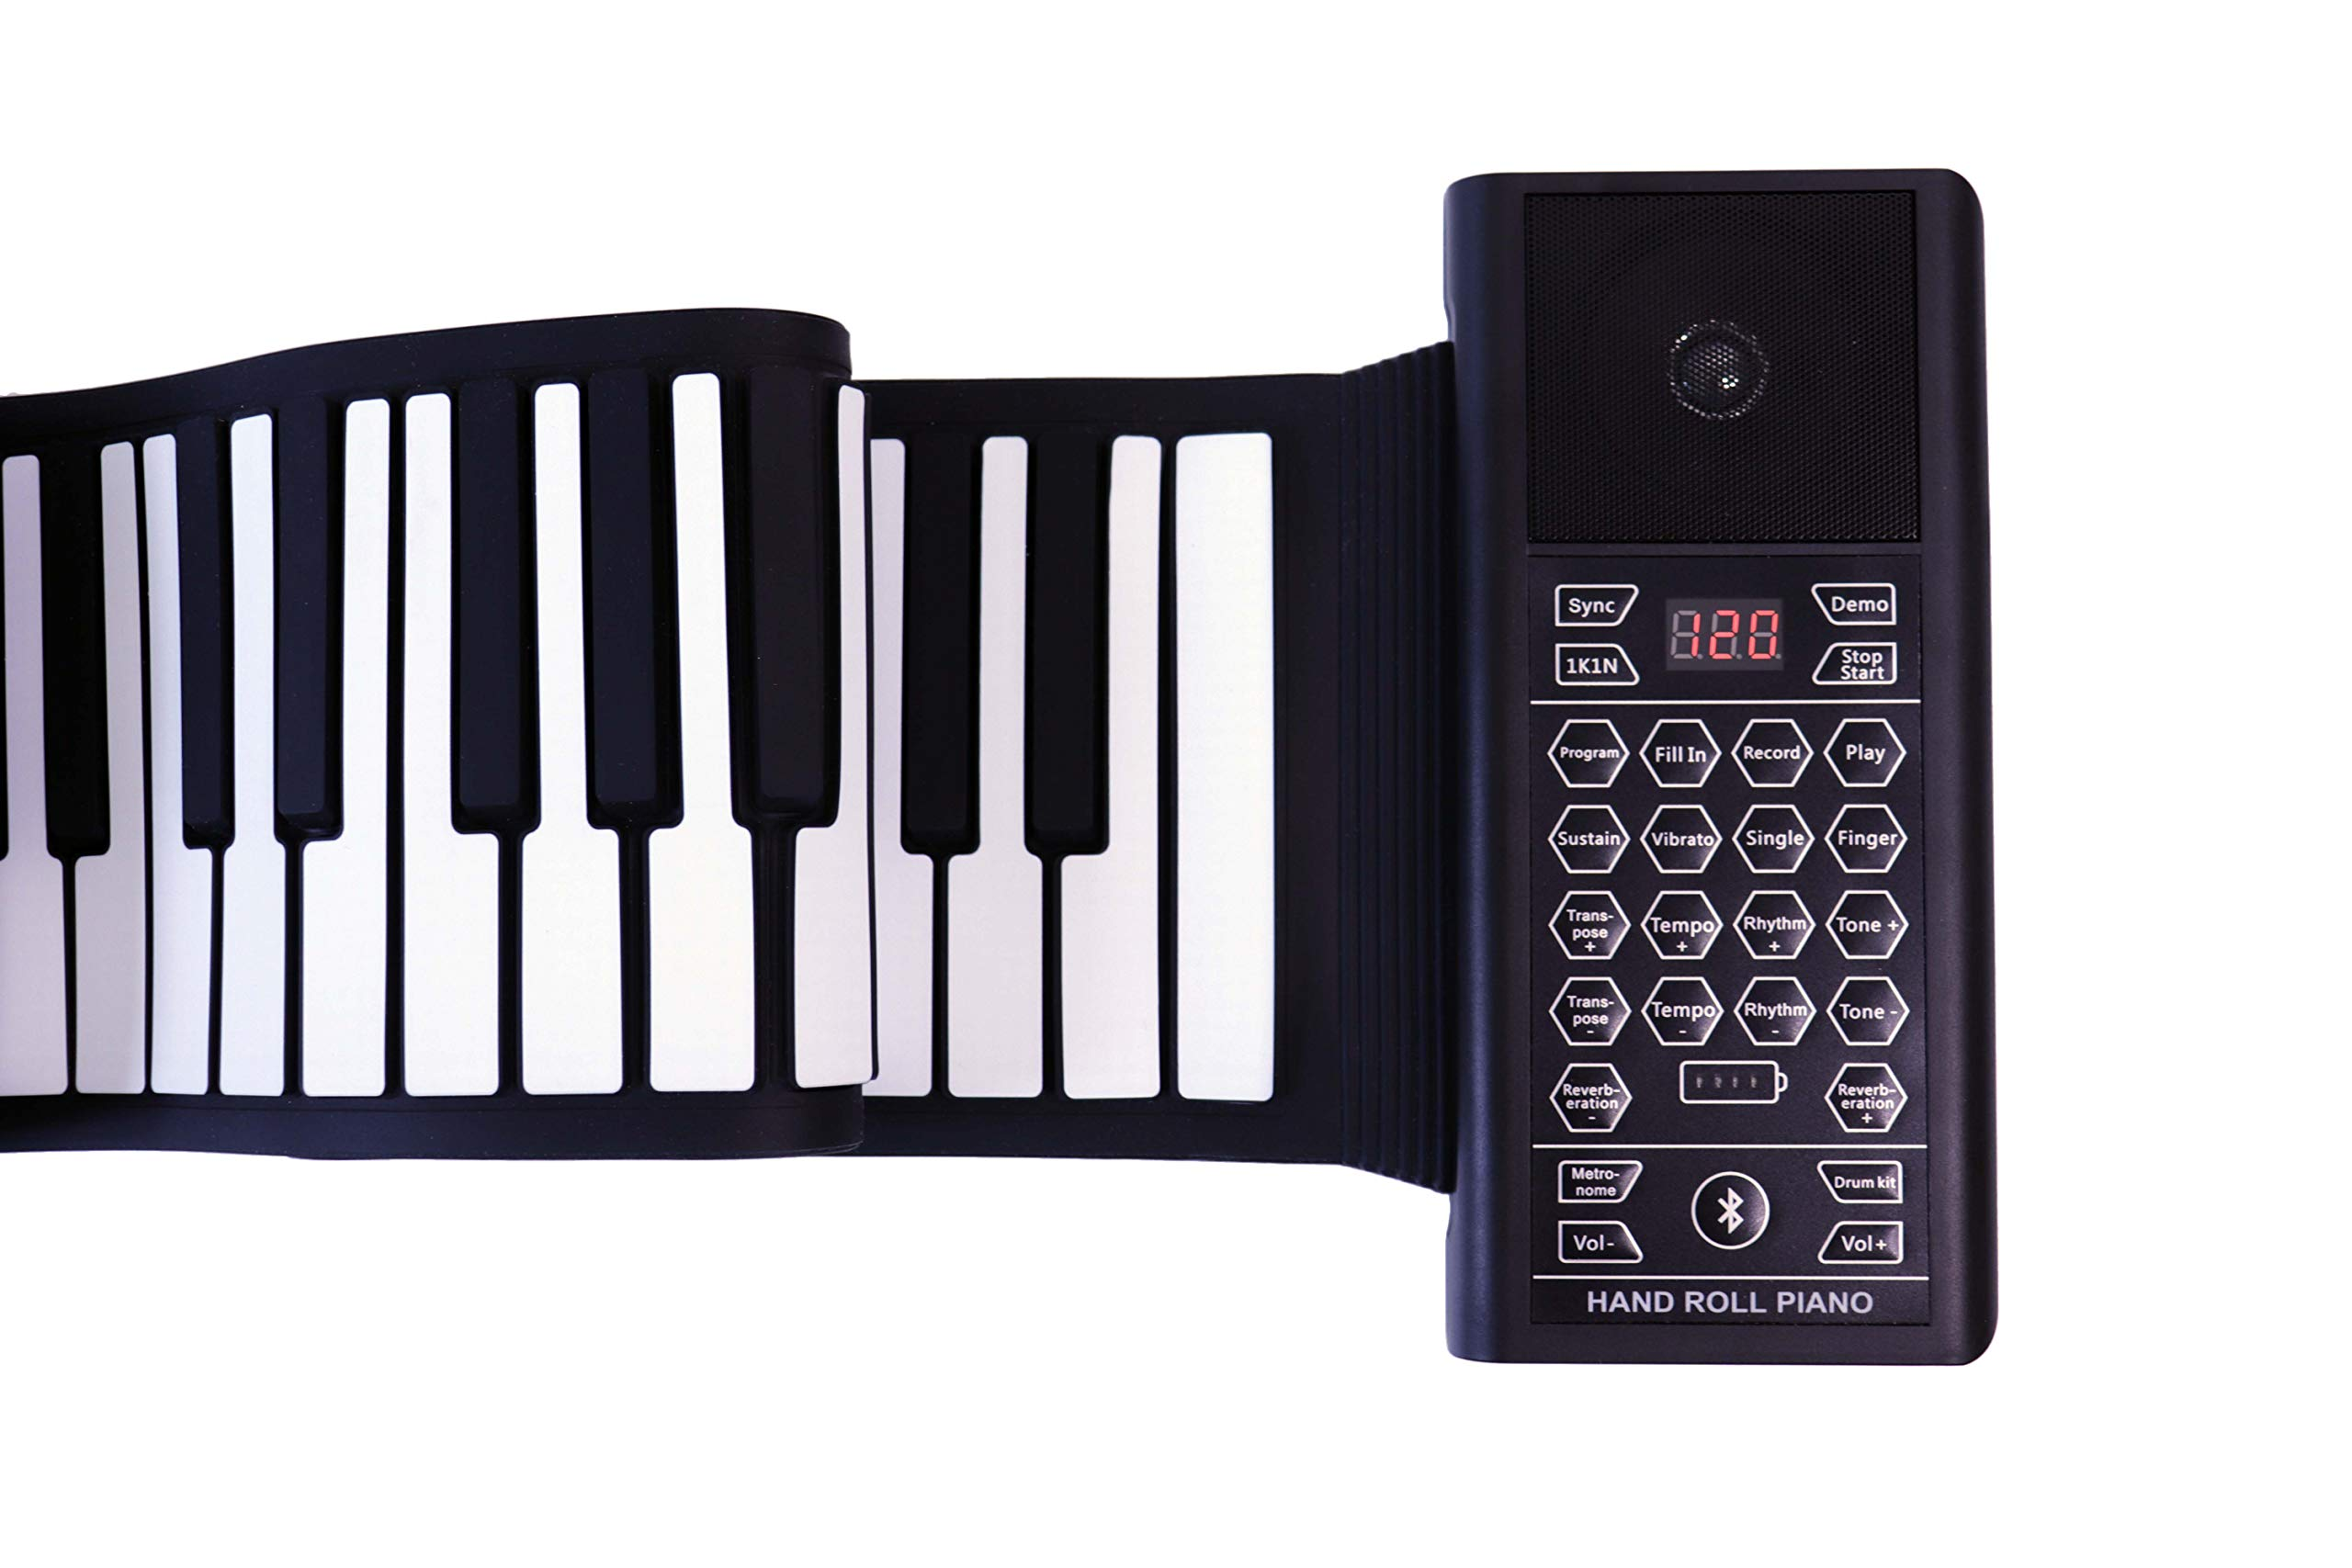 iLearnMusic Roll Up Piano Premium Grade Silicone |THICKENED KEYS | Upgraded Built-in Amplifying Speakers | Portable Piano Keyboard MIDI USB (88 Keys) by Kiker Music